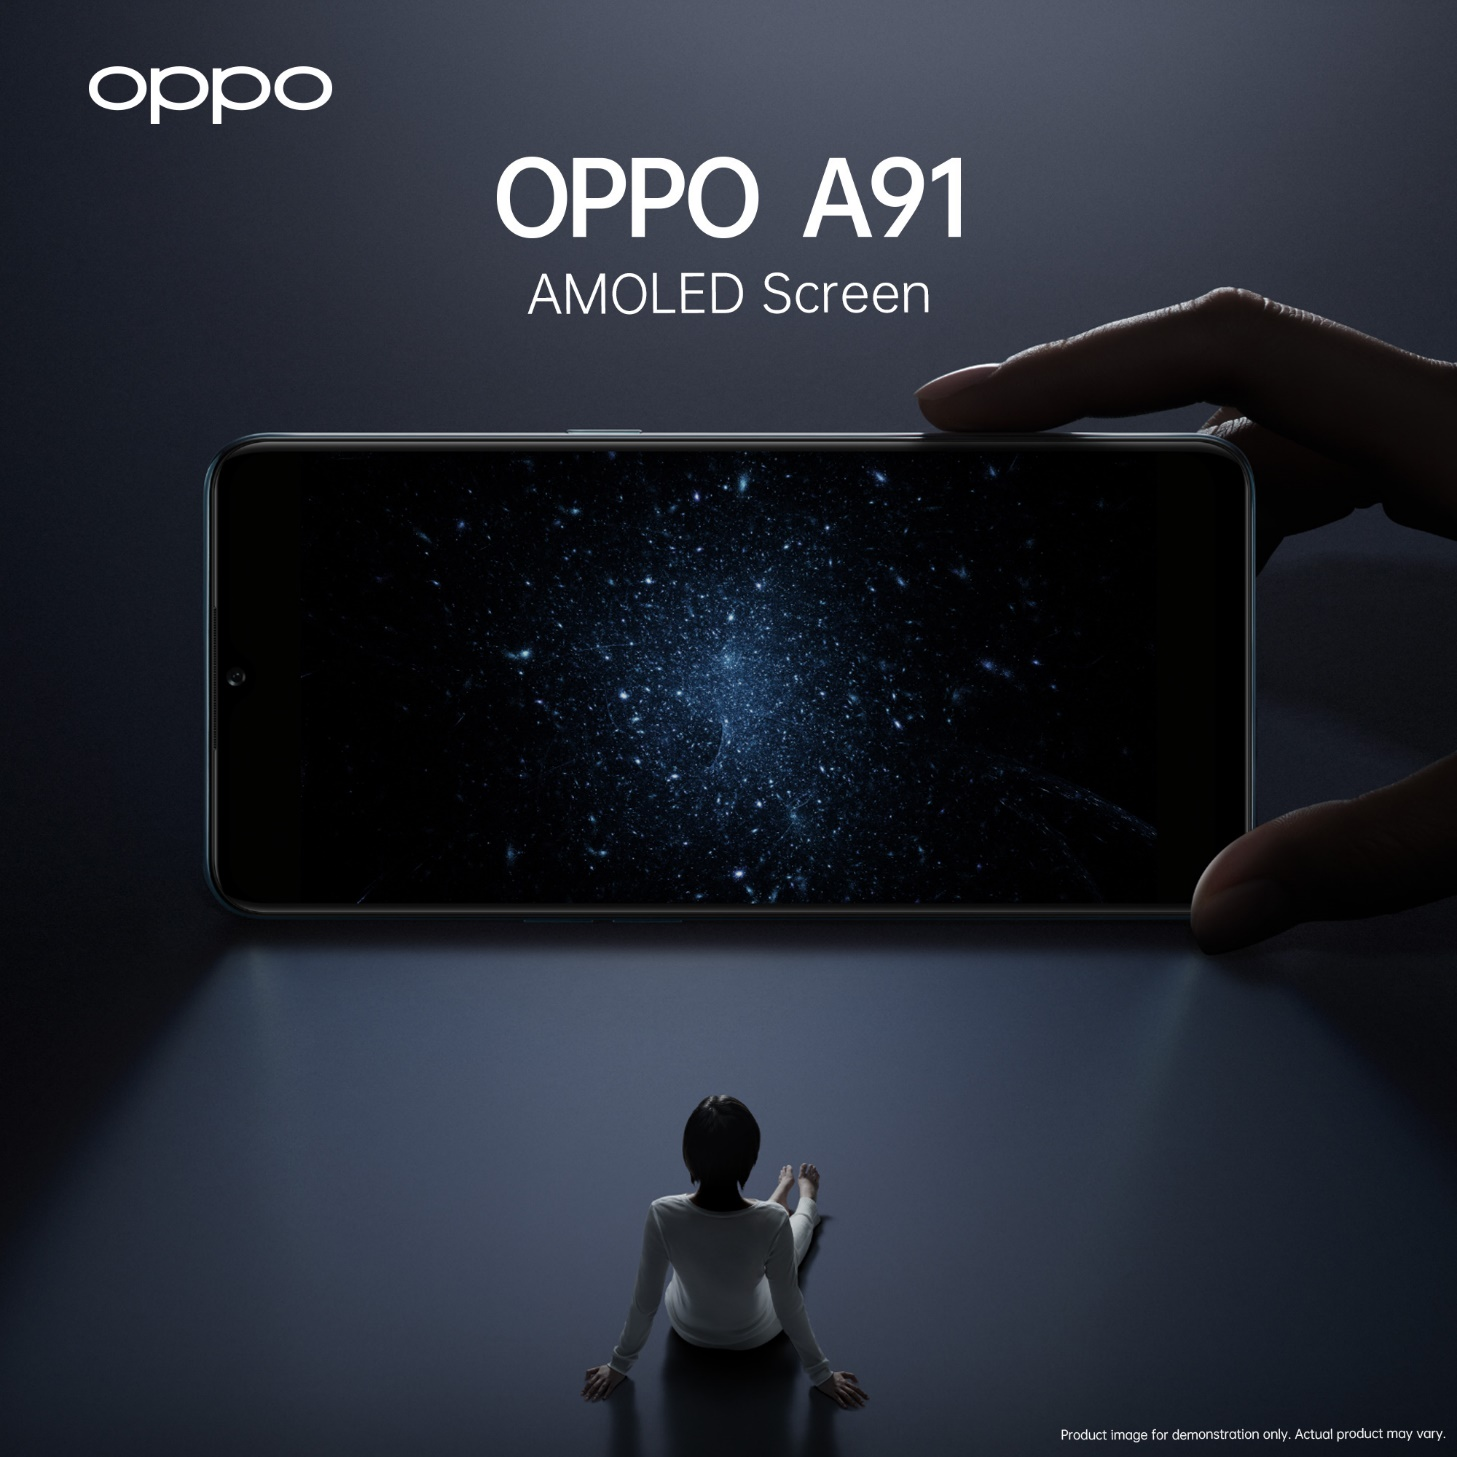 Oppo A91 AMOLED